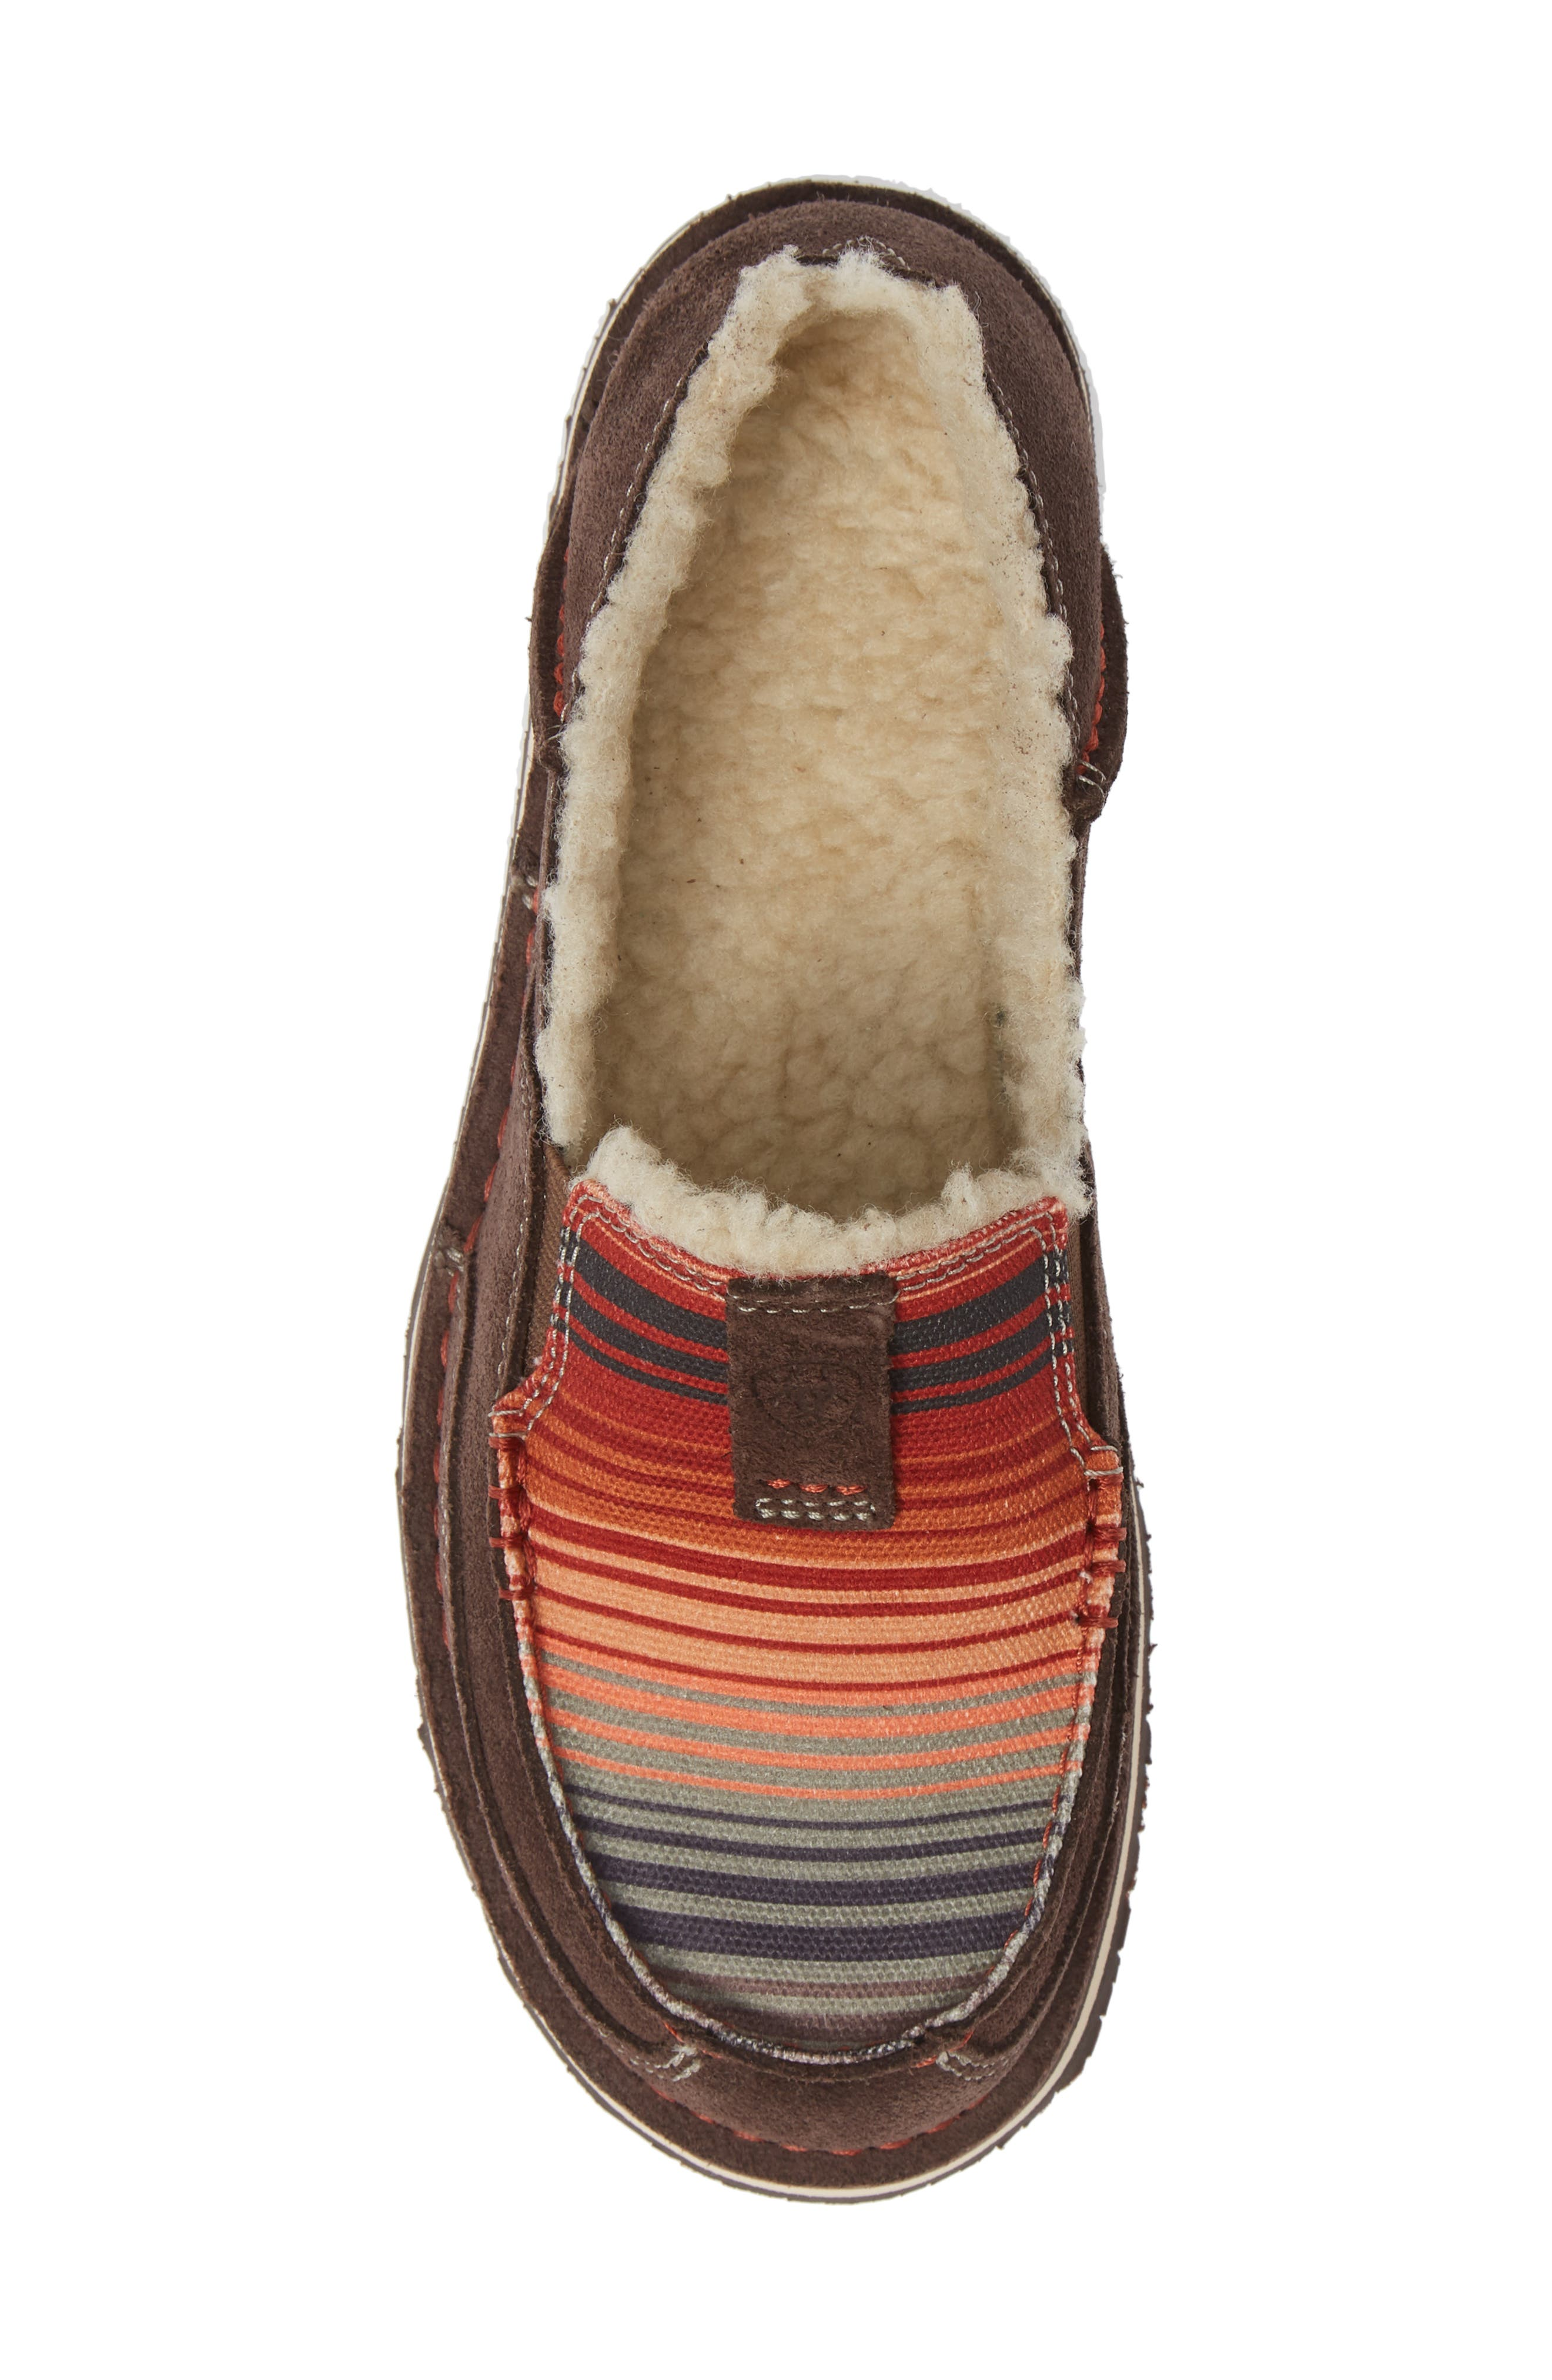 ARIAT,                             Cruiser Slip-On Loafer,                             Alternate thumbnail 5, color,                             SOUTHWESTERN FABRIC